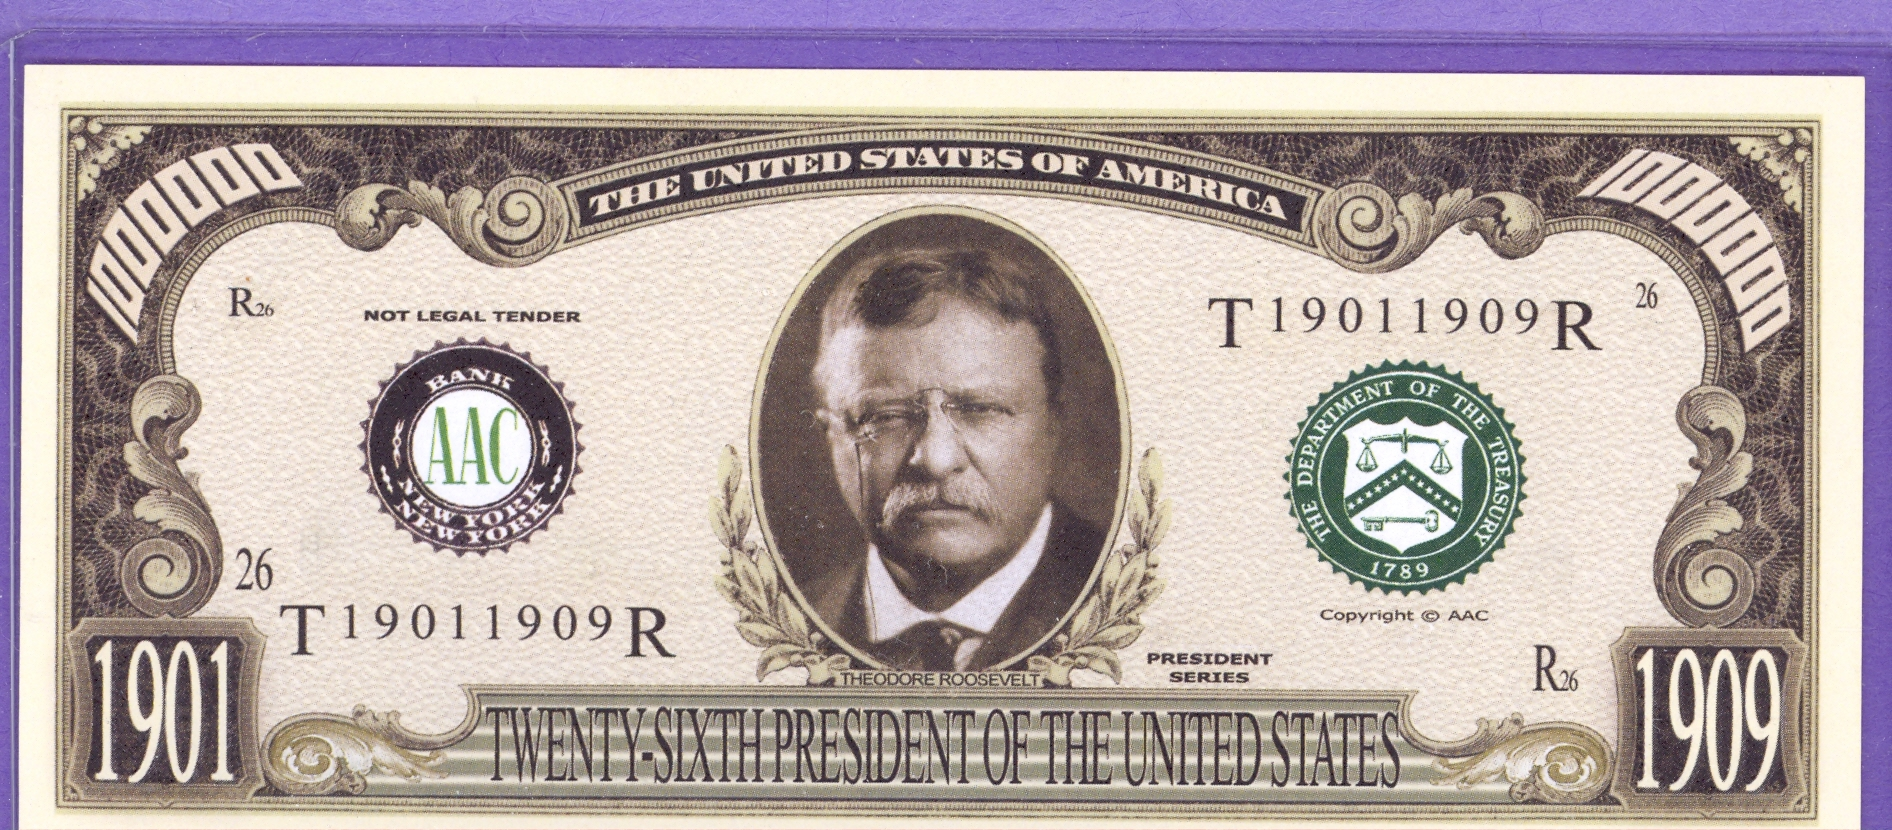 Theodore Roosevelt $1,000,000 Fantasy Note